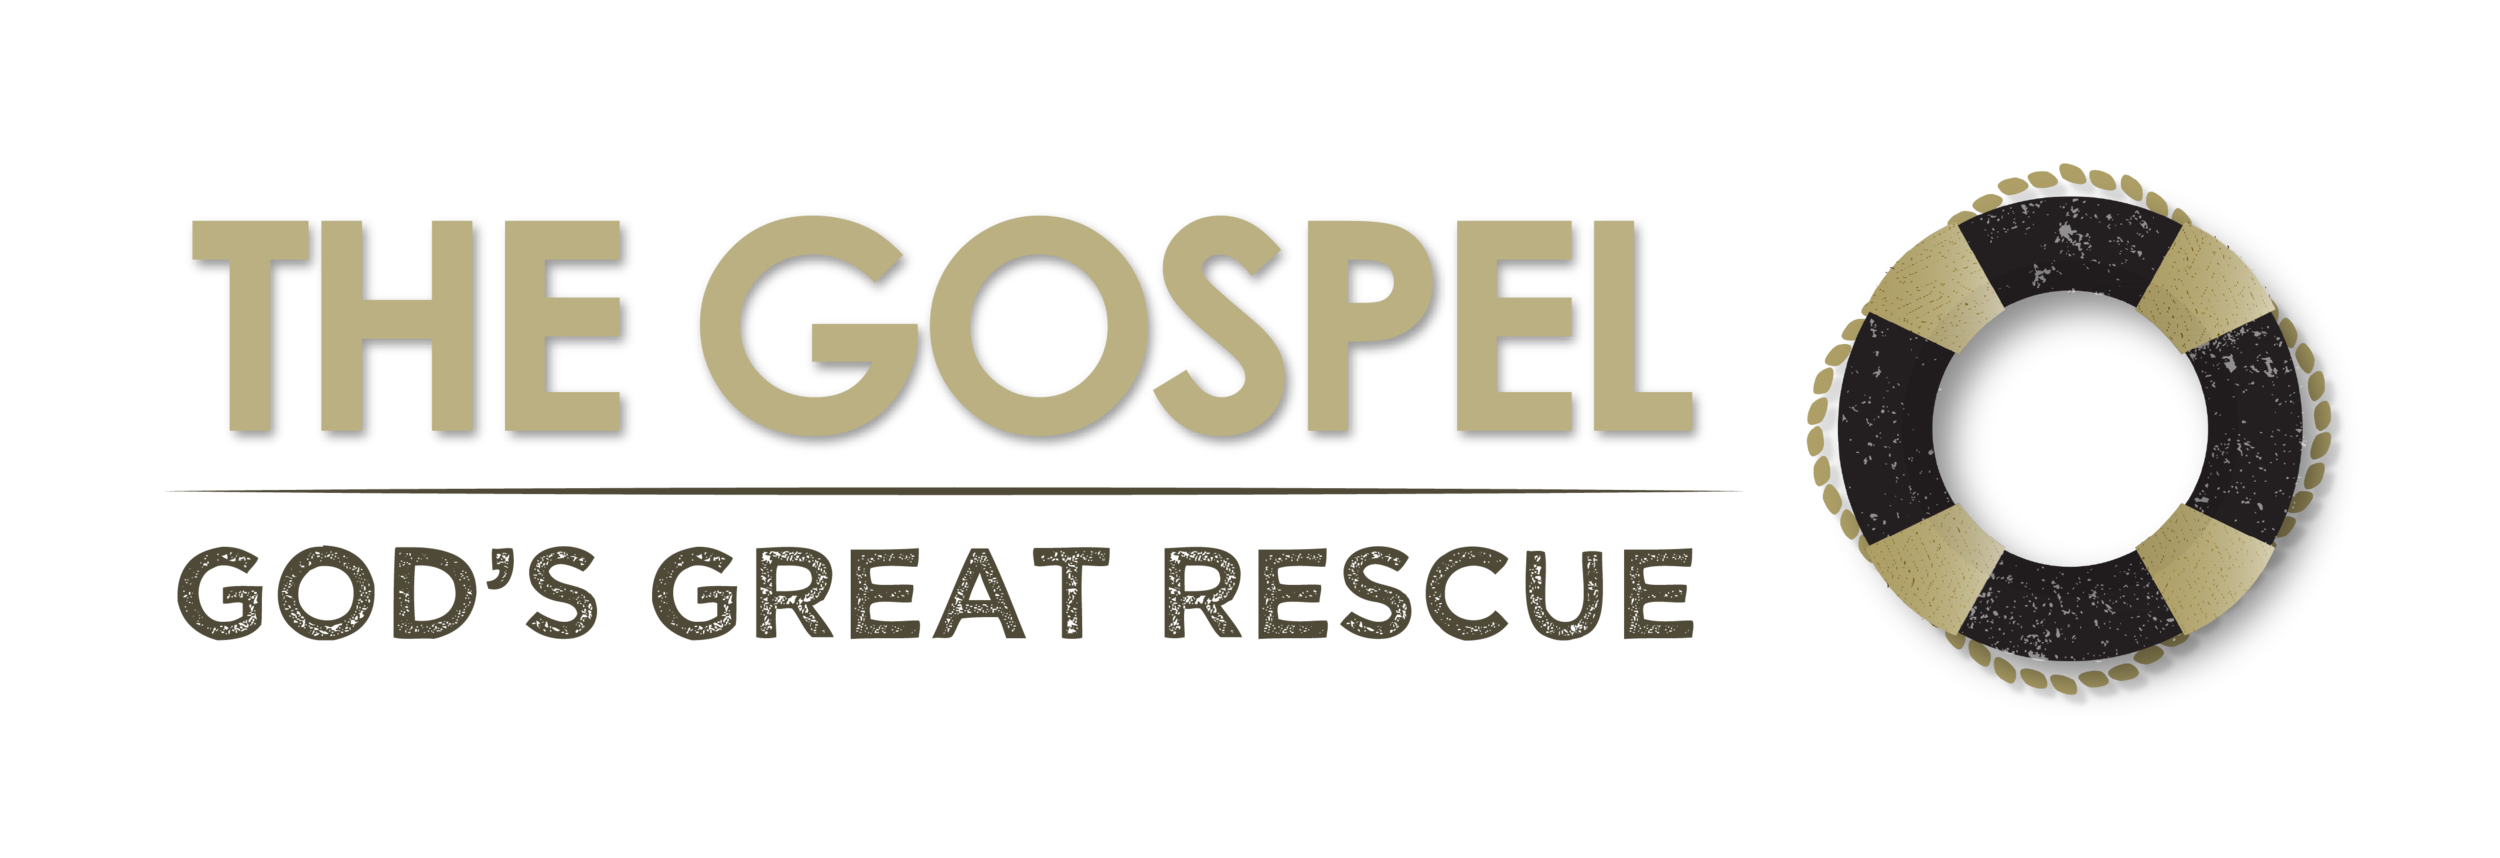 the_gospel_logo.png